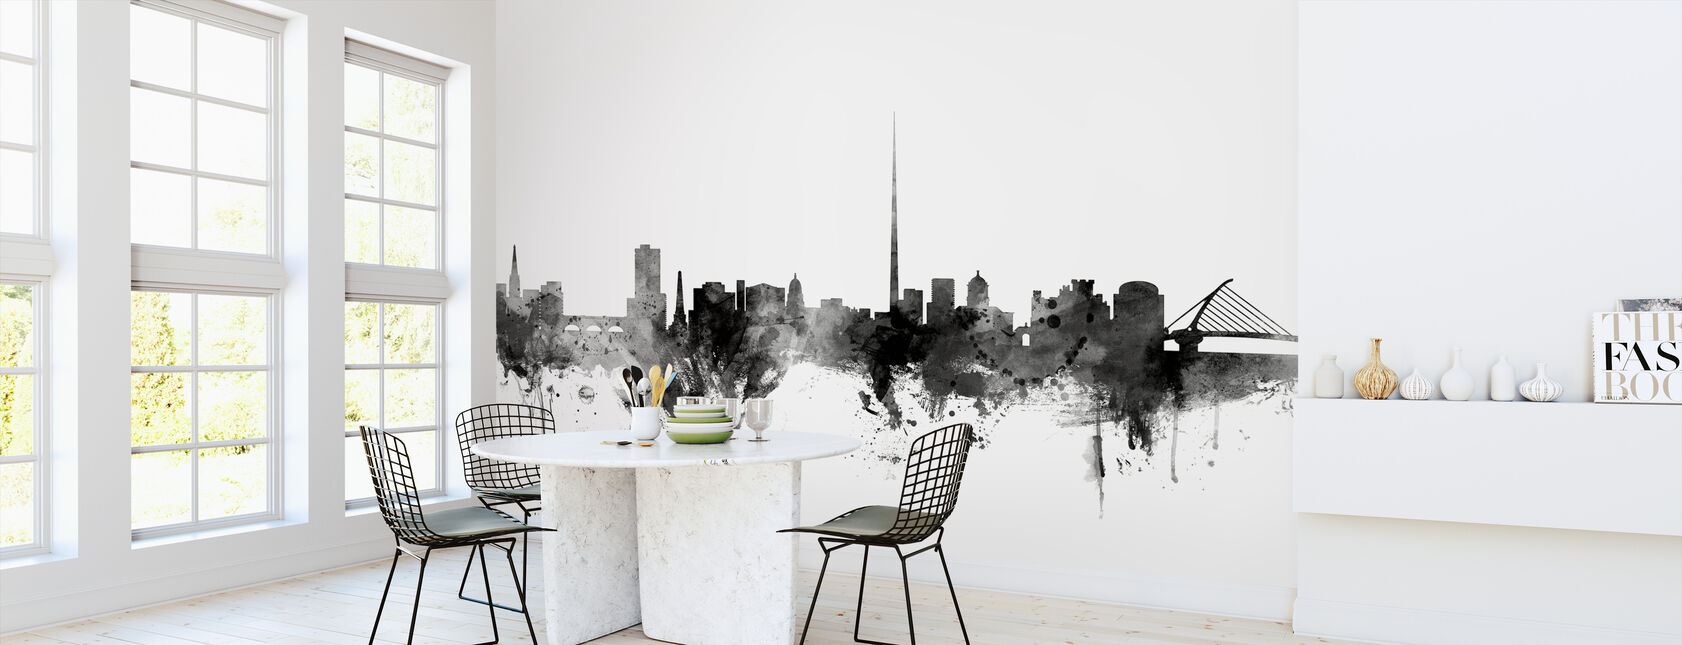 Dublin Ireland Skyline Black - Wallpaper - Kitchen